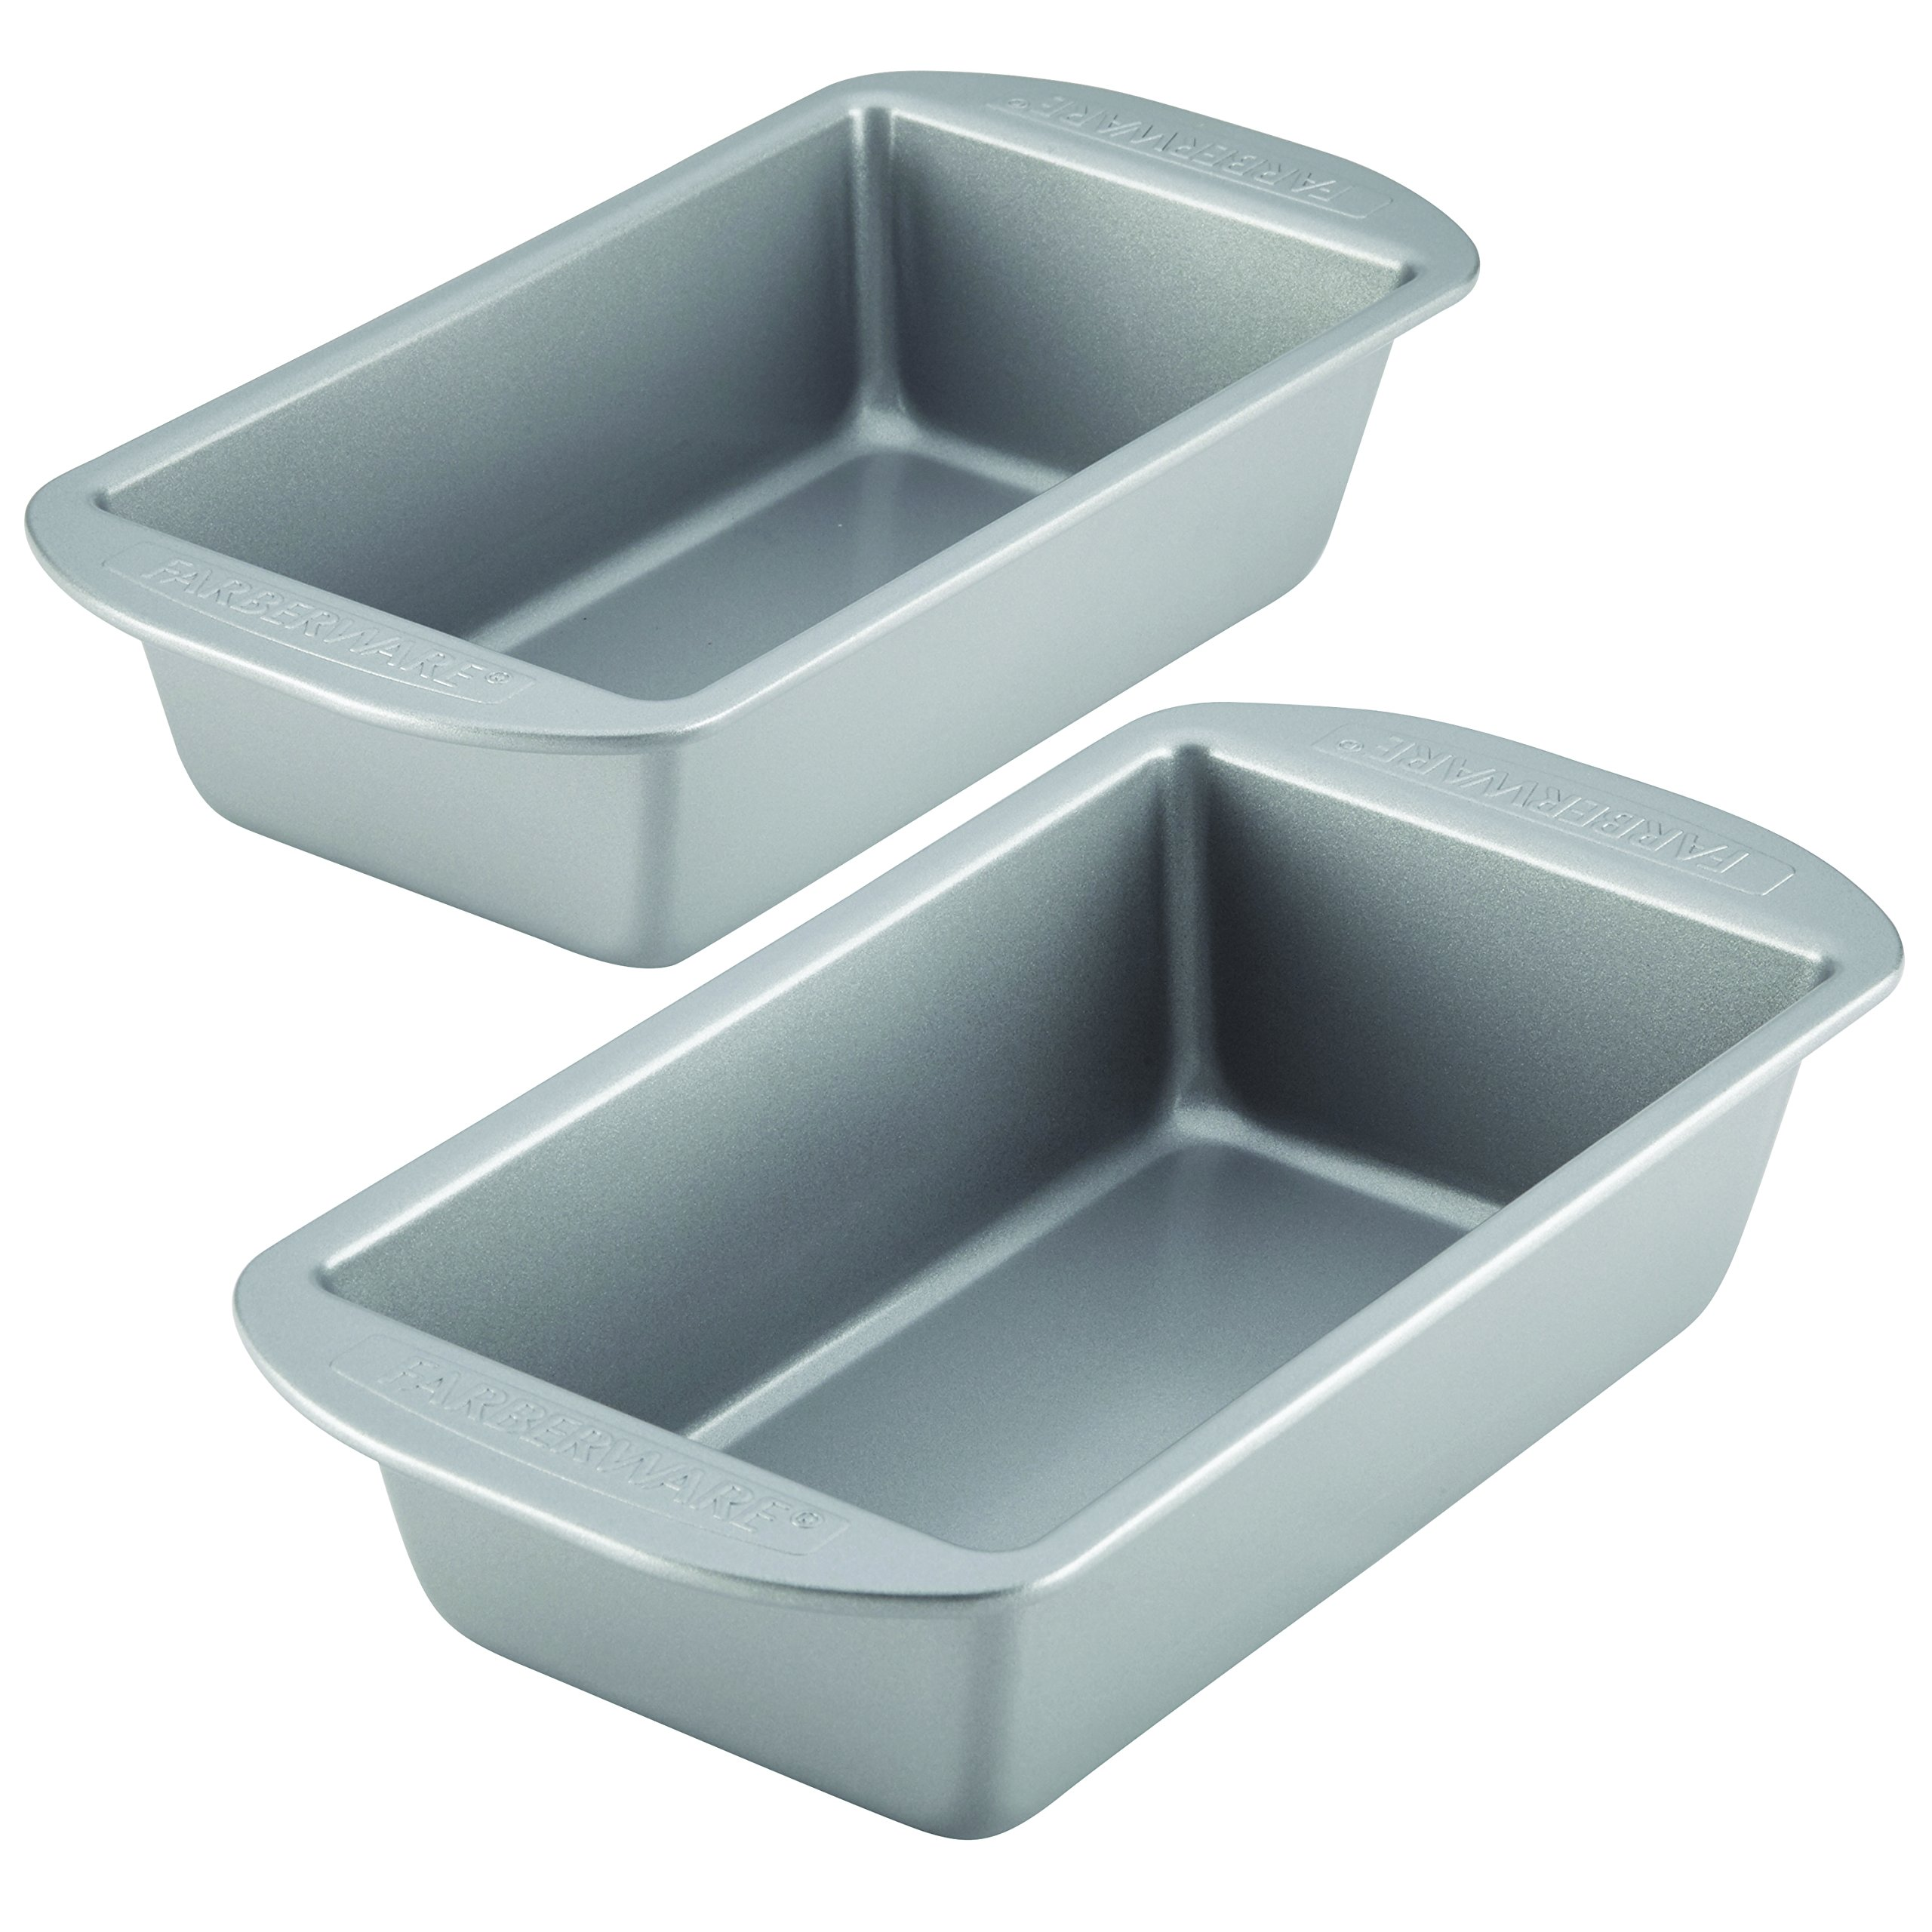 Farberware Nonstick Bakeware Bread and Meat Loaf Pan Set, 2-Piece, Gray by Farberware